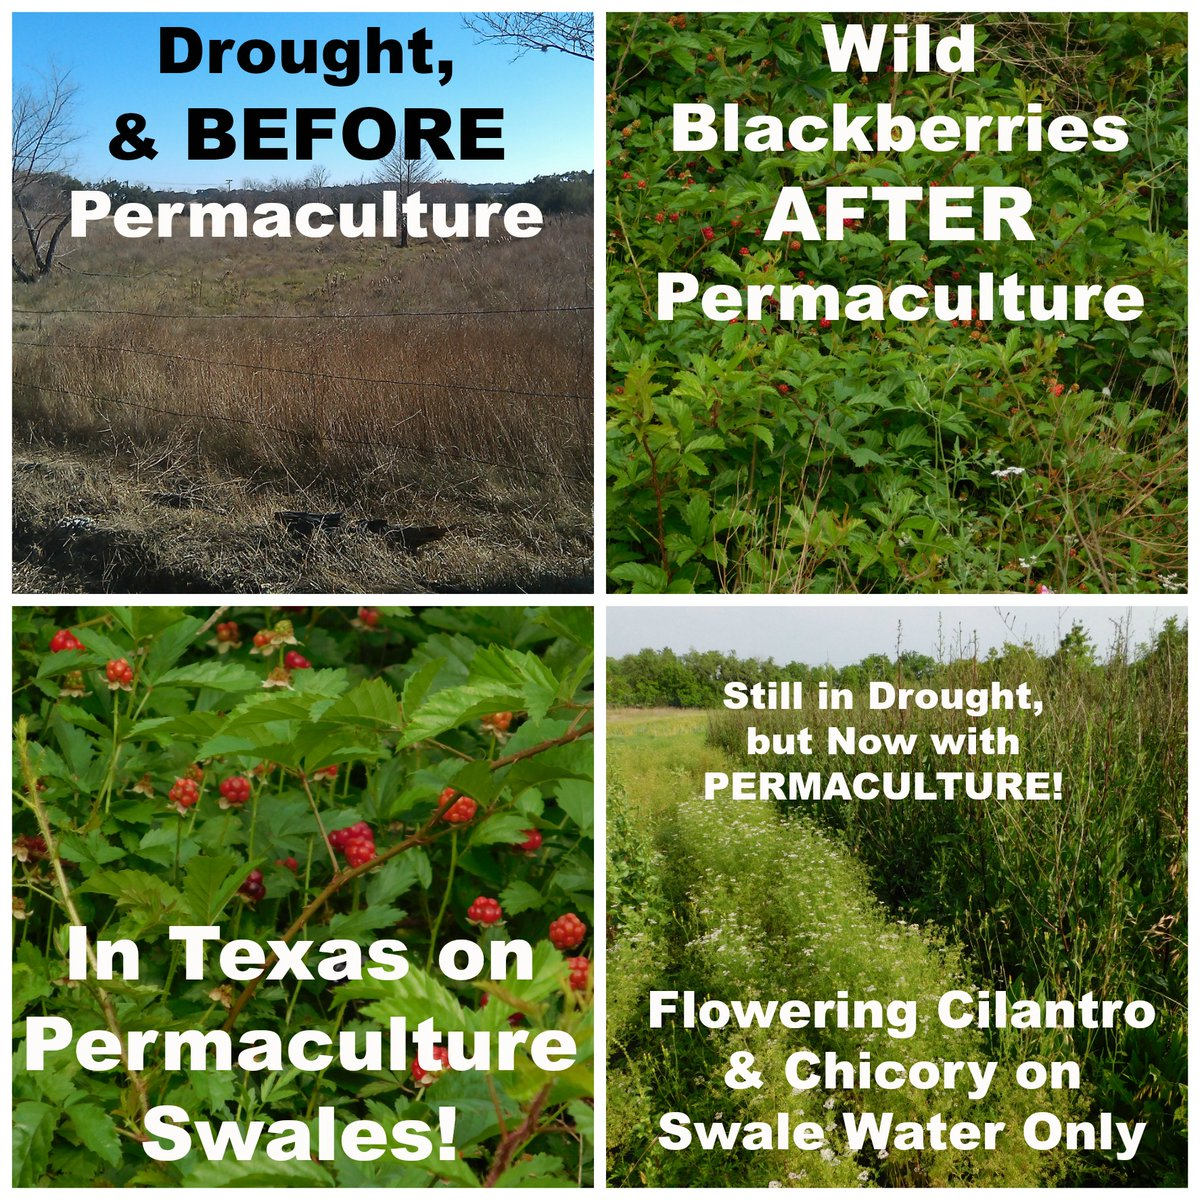 The Possibilities of #Permaculture...  https://www.pinterest.com/farmfairycrafts/organic-gardening-permaculture/…pic.twitter.com/7JFPn0ec5v